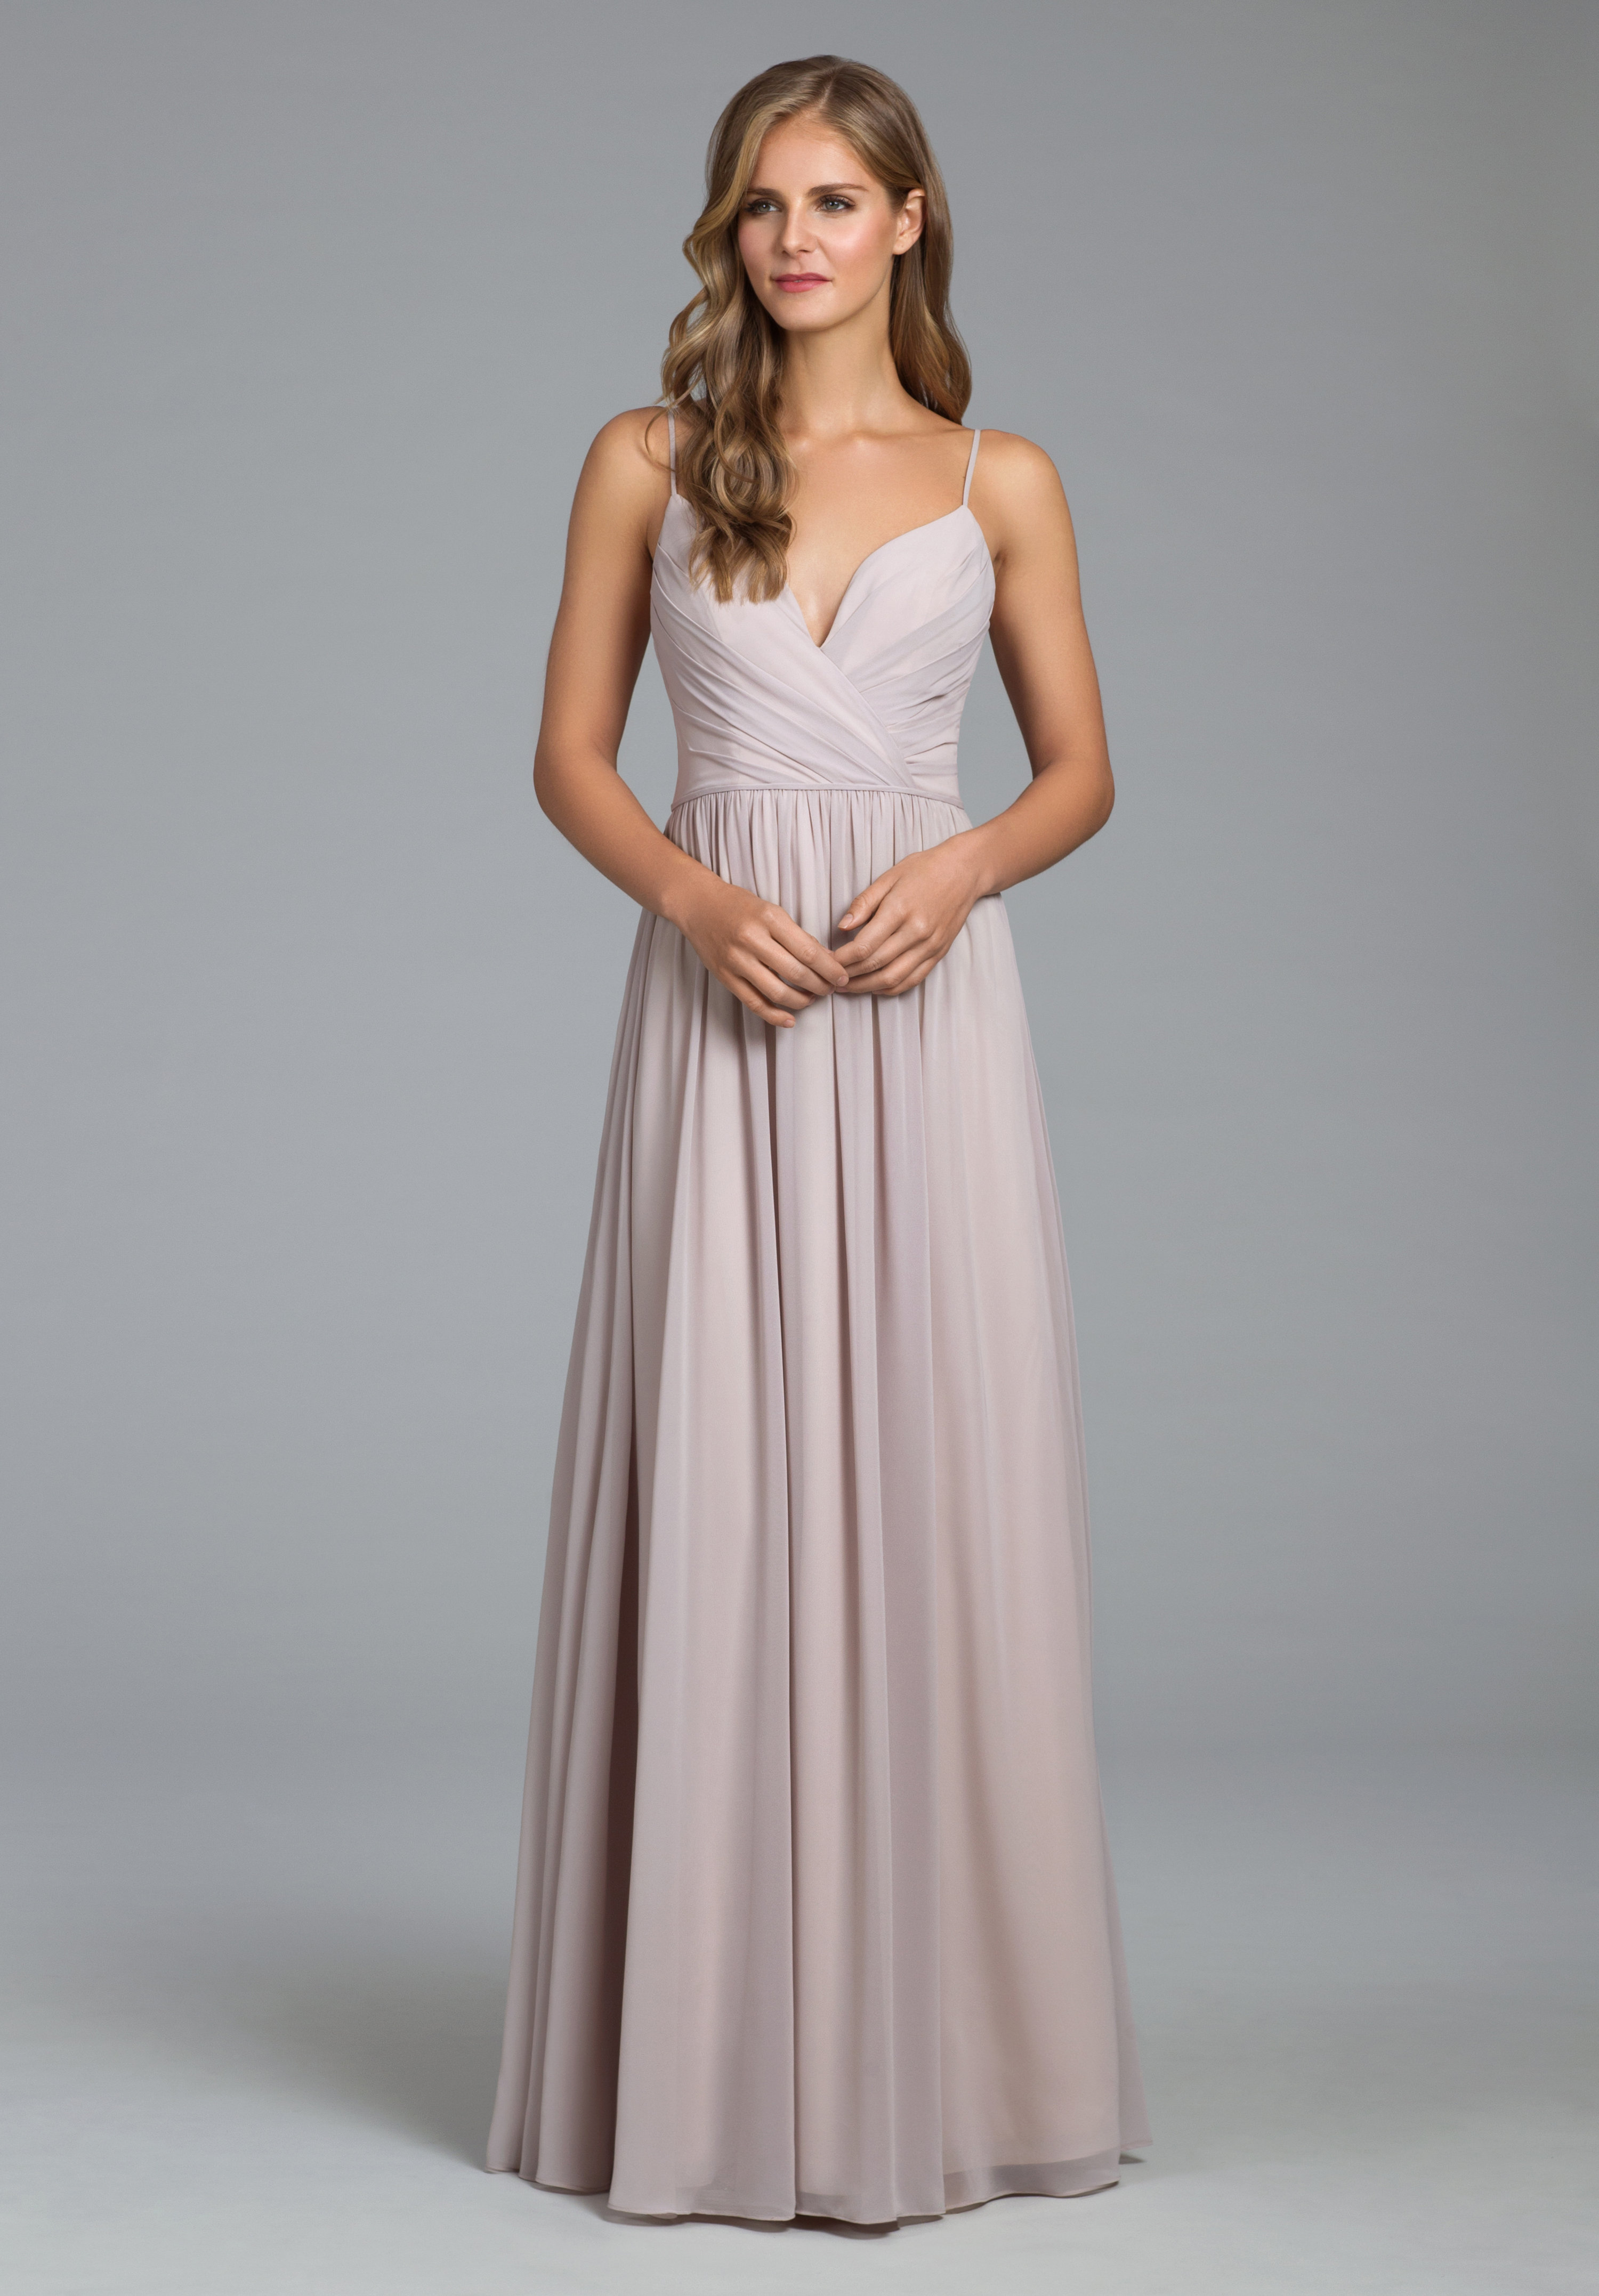 hayley-paige-occasions-bridesmaids-and-special-occasion-spring-2018-style-5800